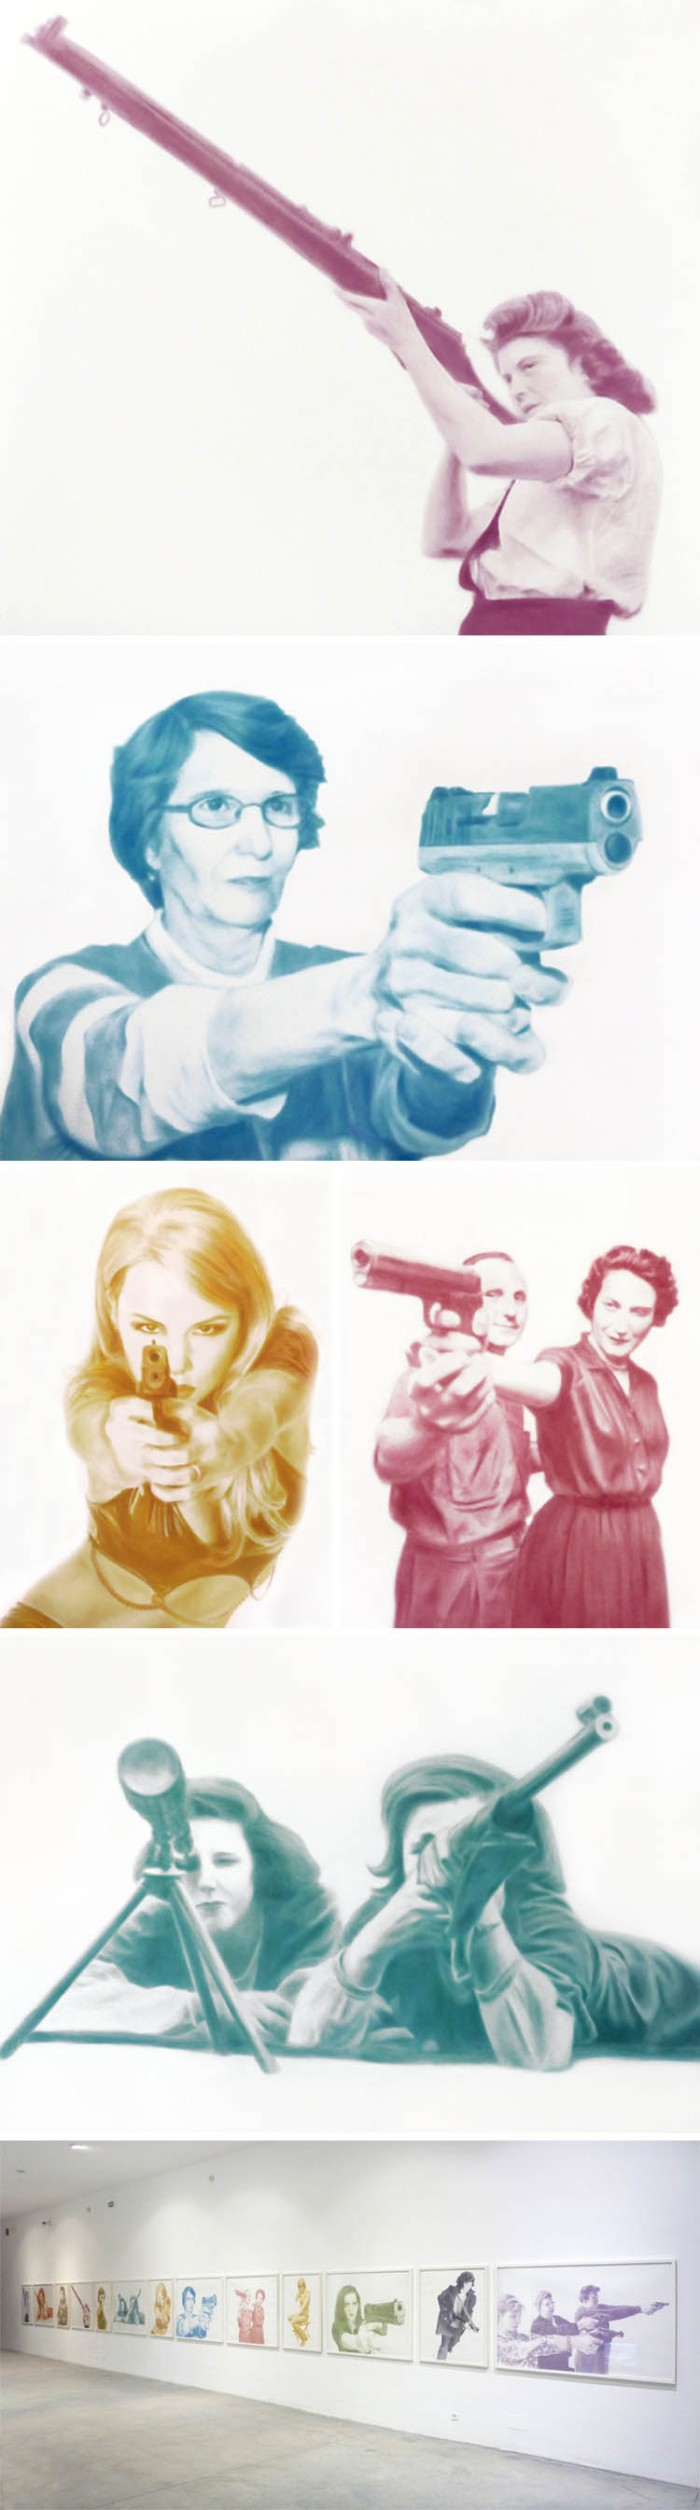 Drawings of women shooting by Brigitte Zieger in eye shadow